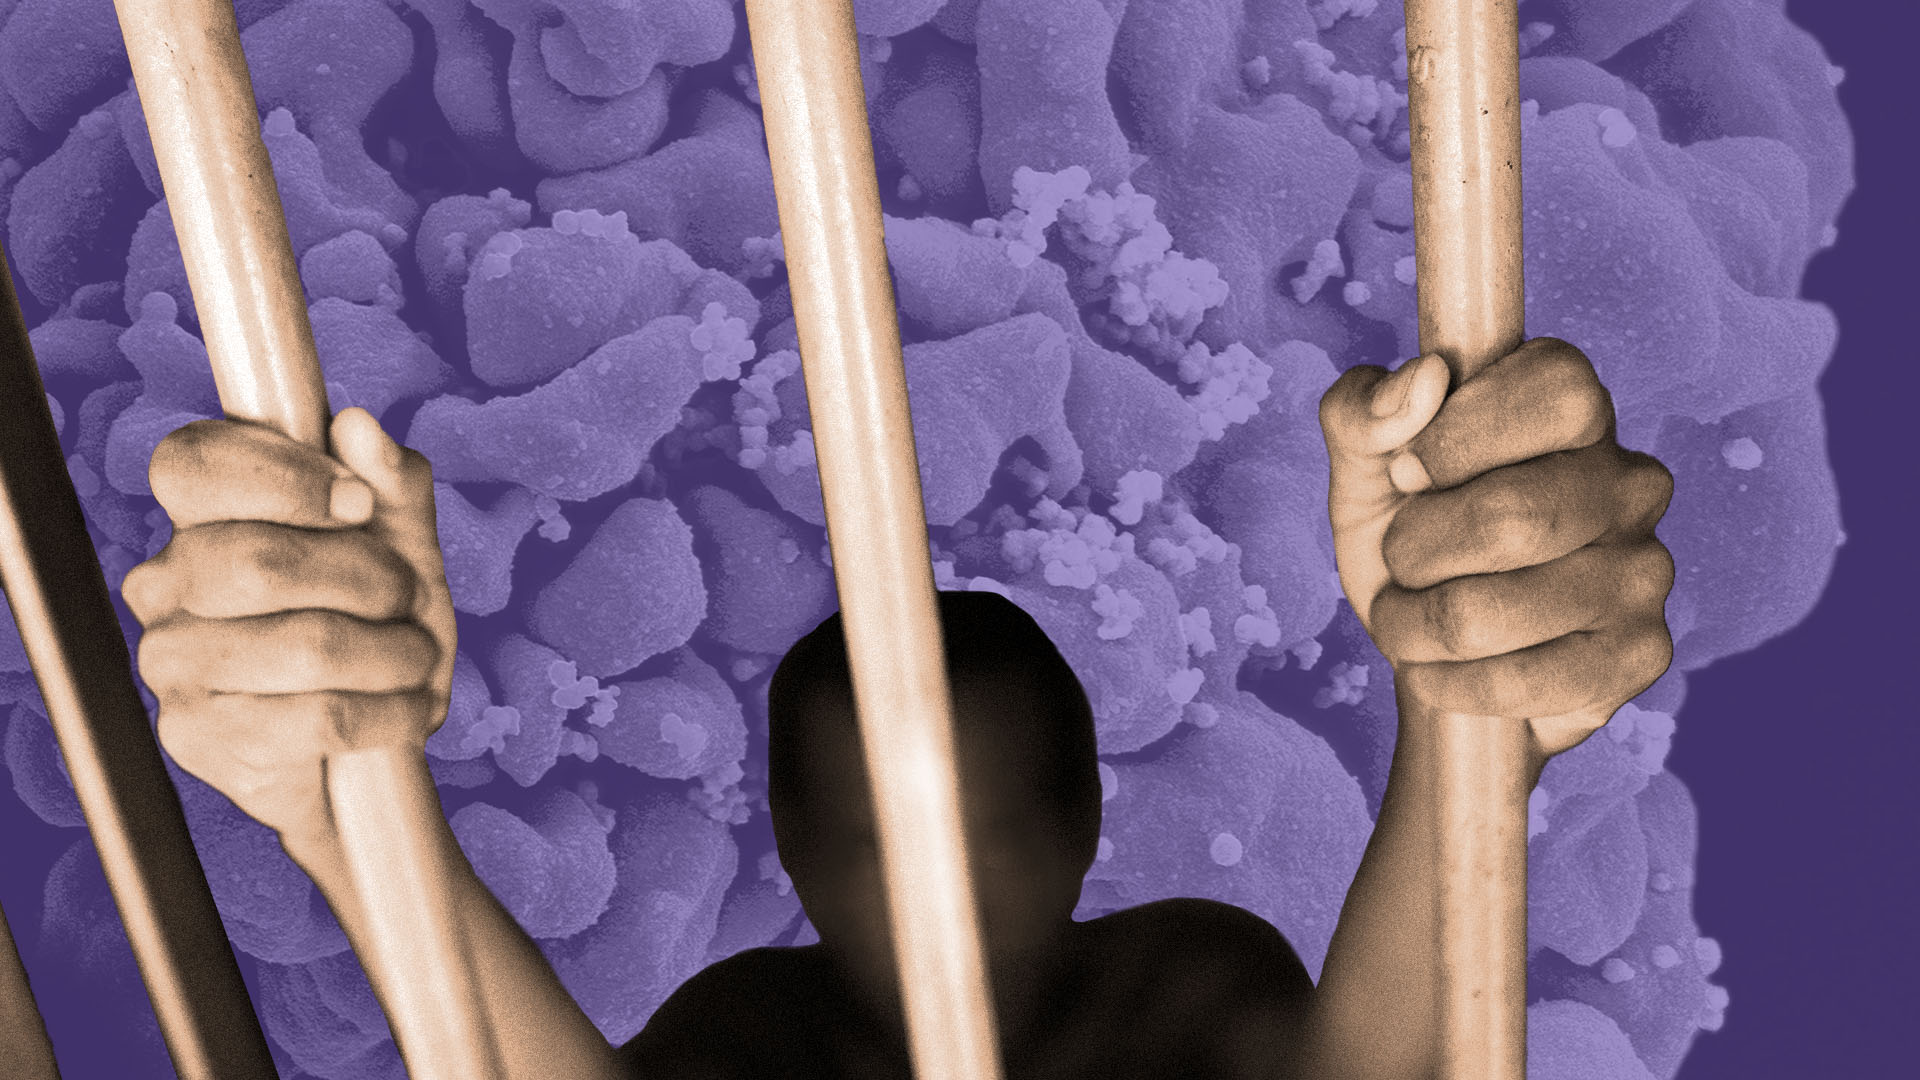 It's time to end criminal prosecutions against people living with HIV